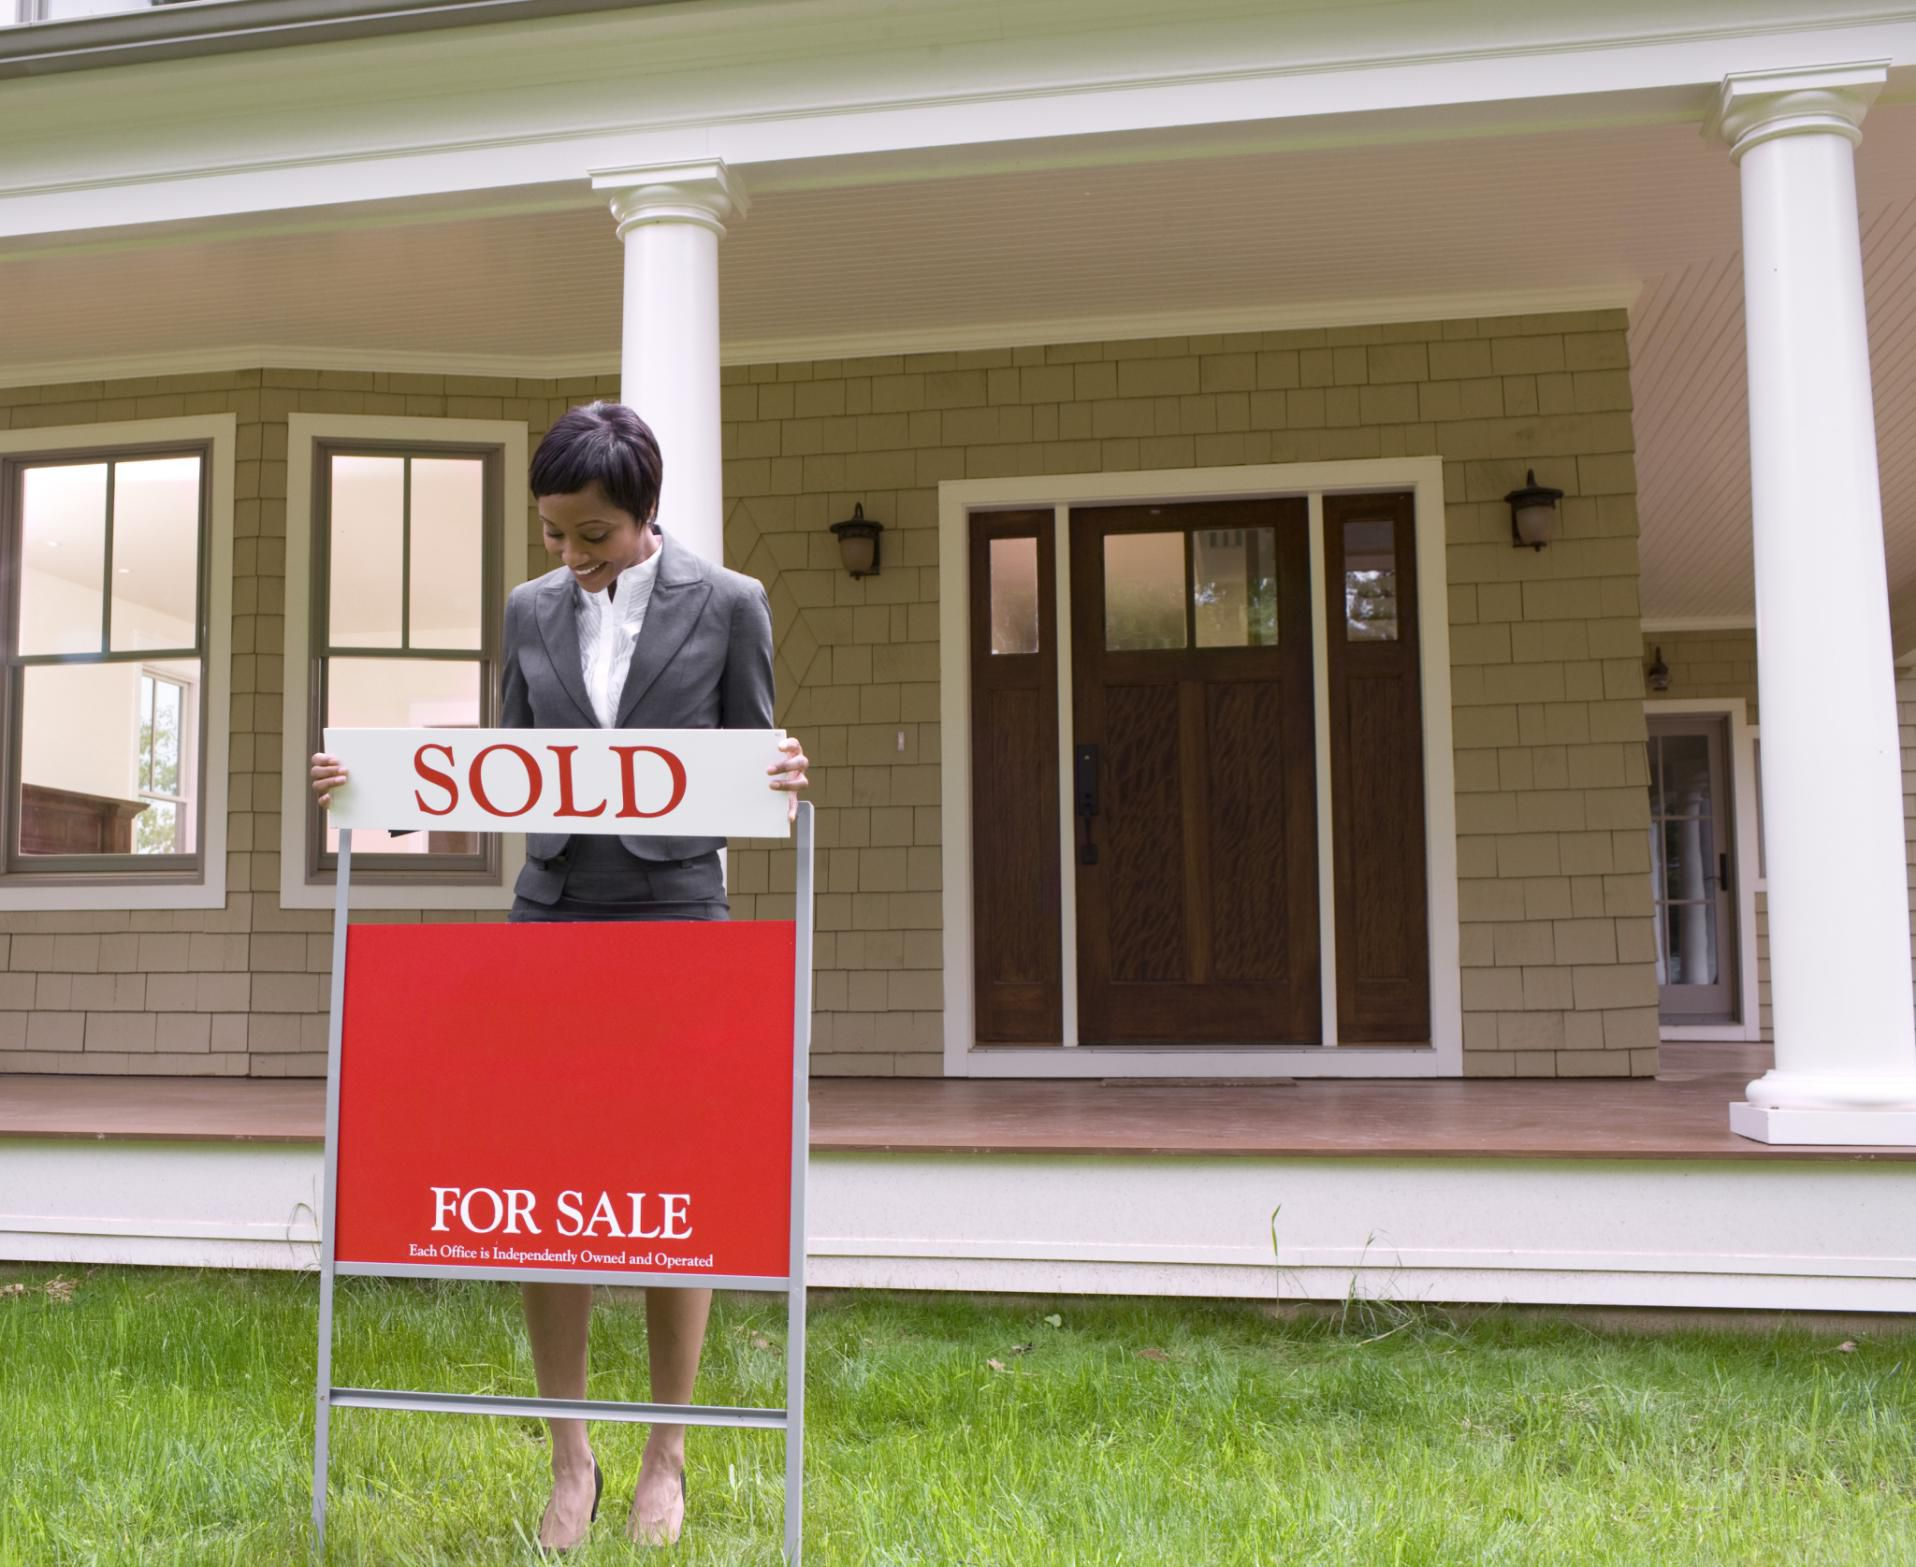 What Happens After a Home Buyer's Offer is Accepted?